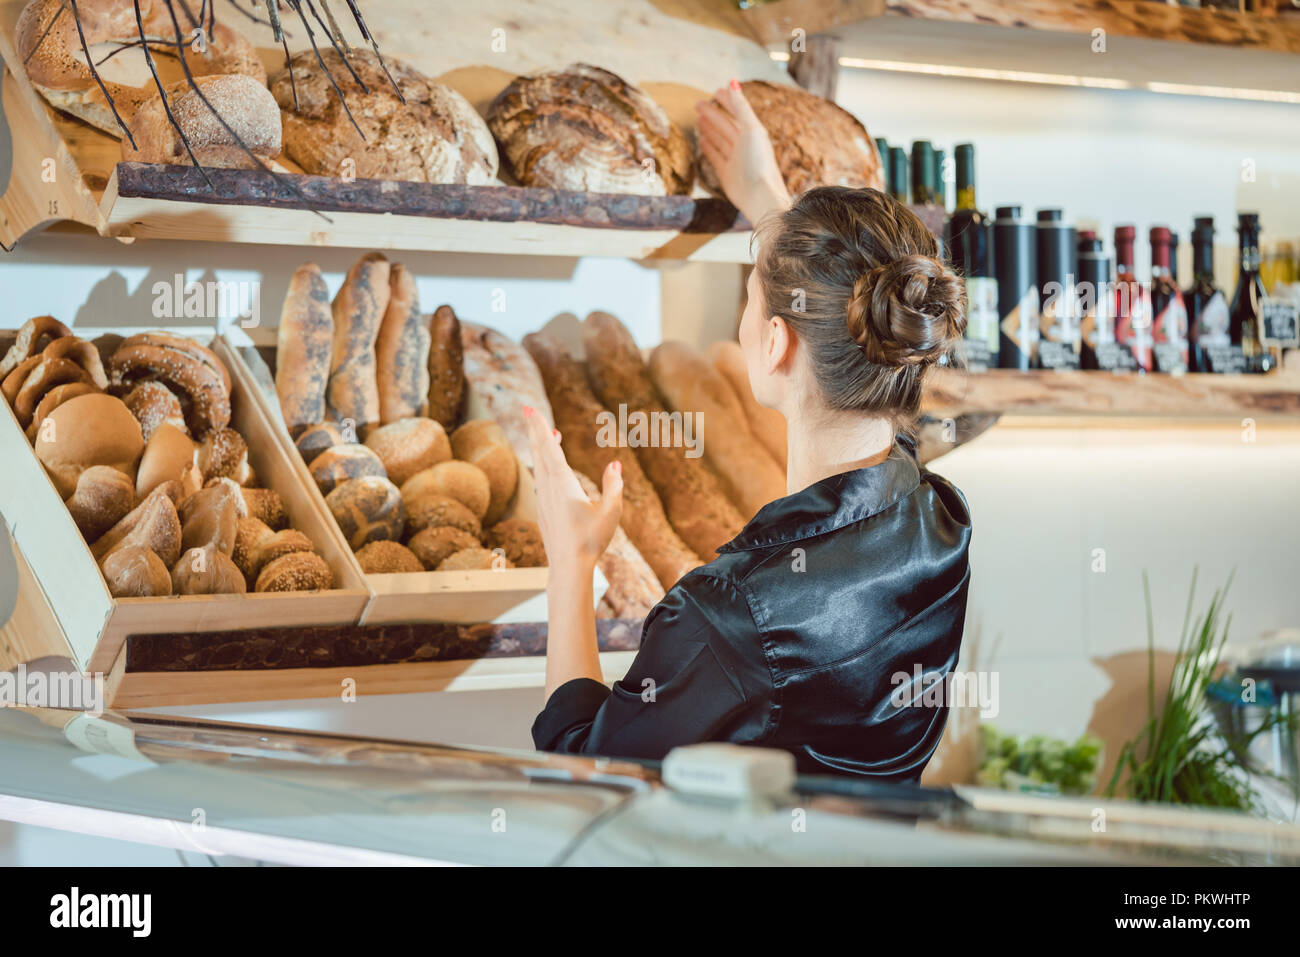 Shop assistant sorting bread to be sold - Stock Image